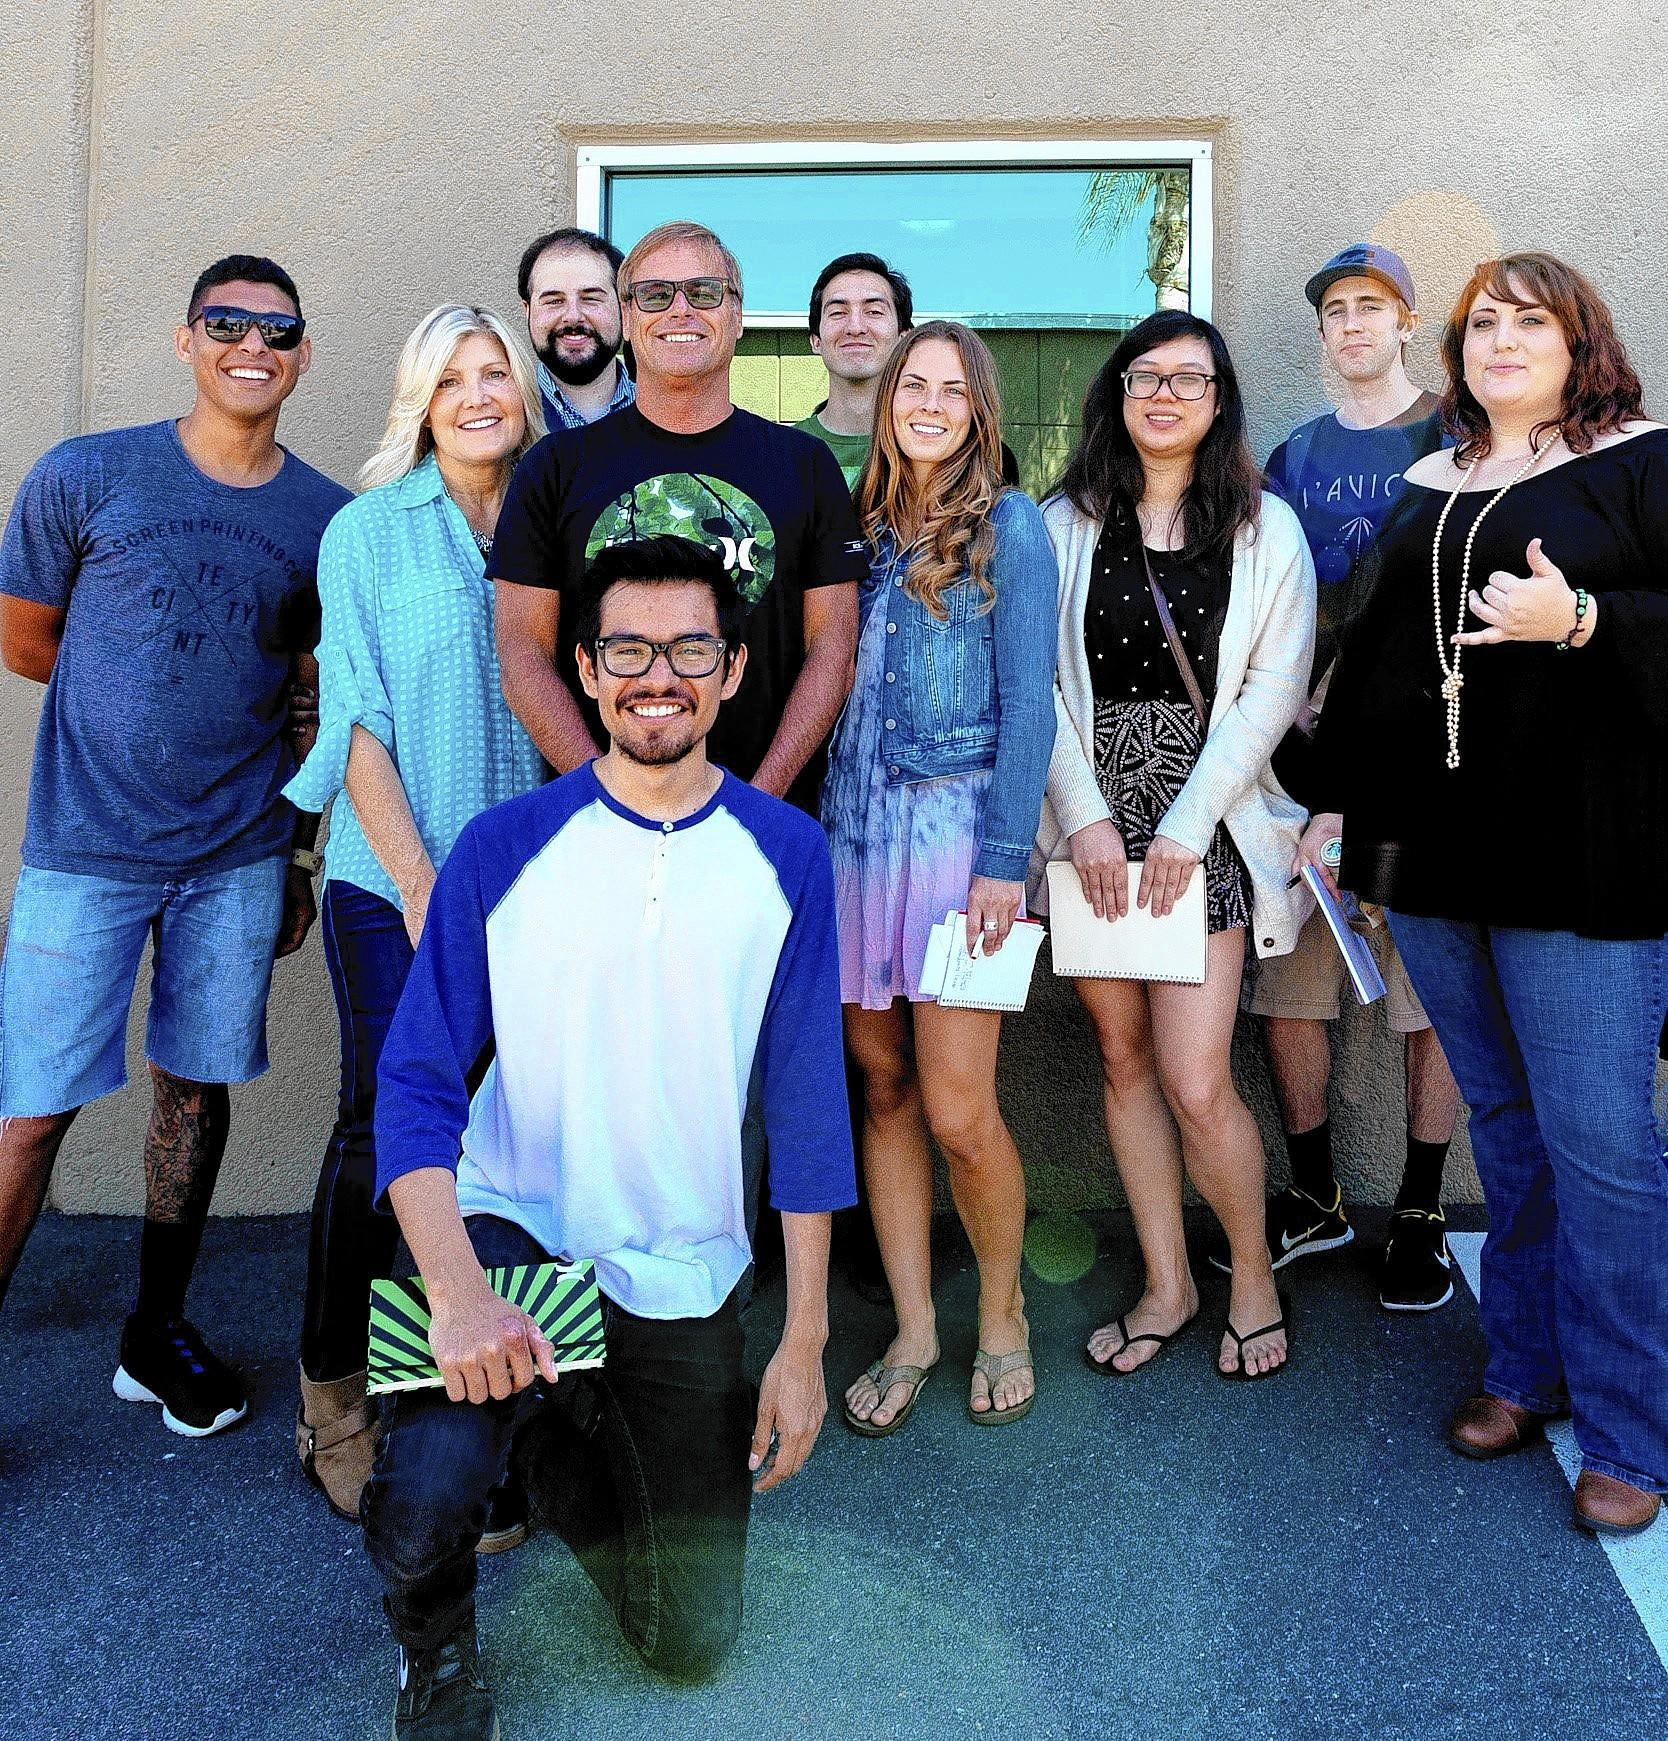 Bob Hurley, fourth from left, founder and chief executive of Hurley International, will speak at Laguna College of Art   Design's graduation on May 19. Here, he's seen with LCAD students Brandon Strong, Catharin Eure, Abram Goglanian, Bob Julian Lozano, Will Brown, Mariel Bradshaw, Wesley Chau, Drew Endly, and Katie Hendrickson.